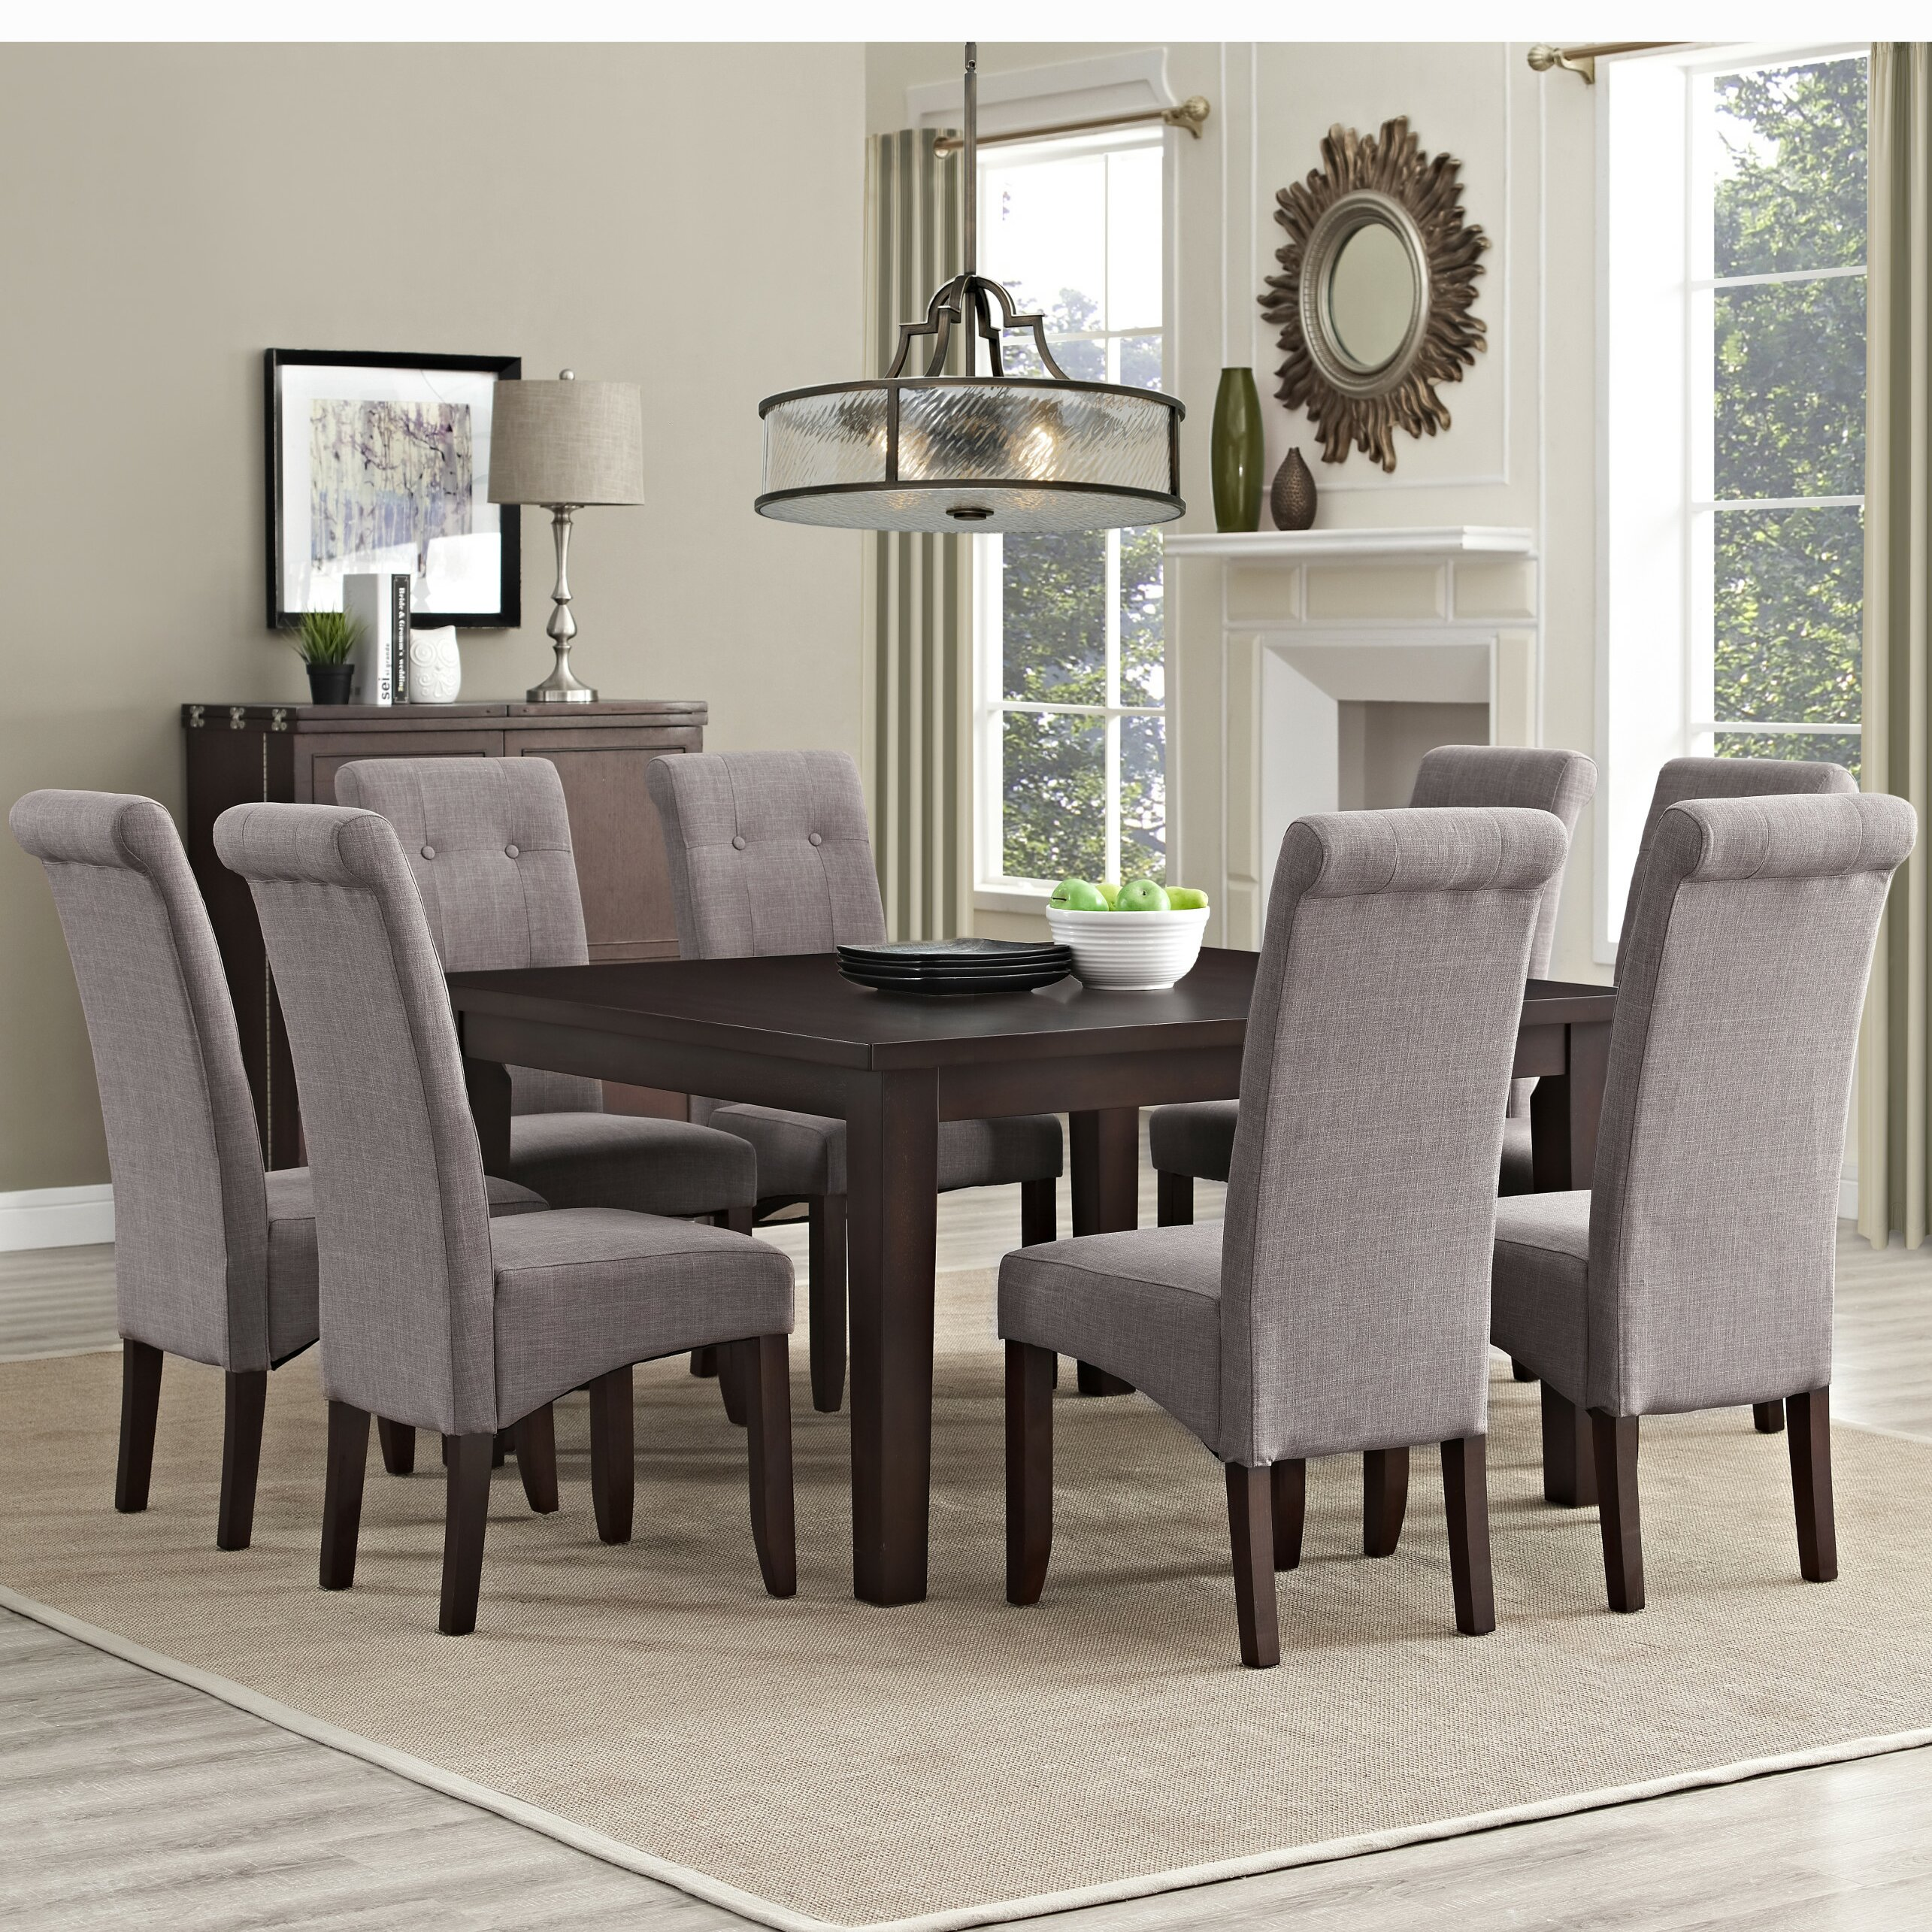 Simpli home eastwood 9 piece dining set reviews wayfair for Dining room chair set